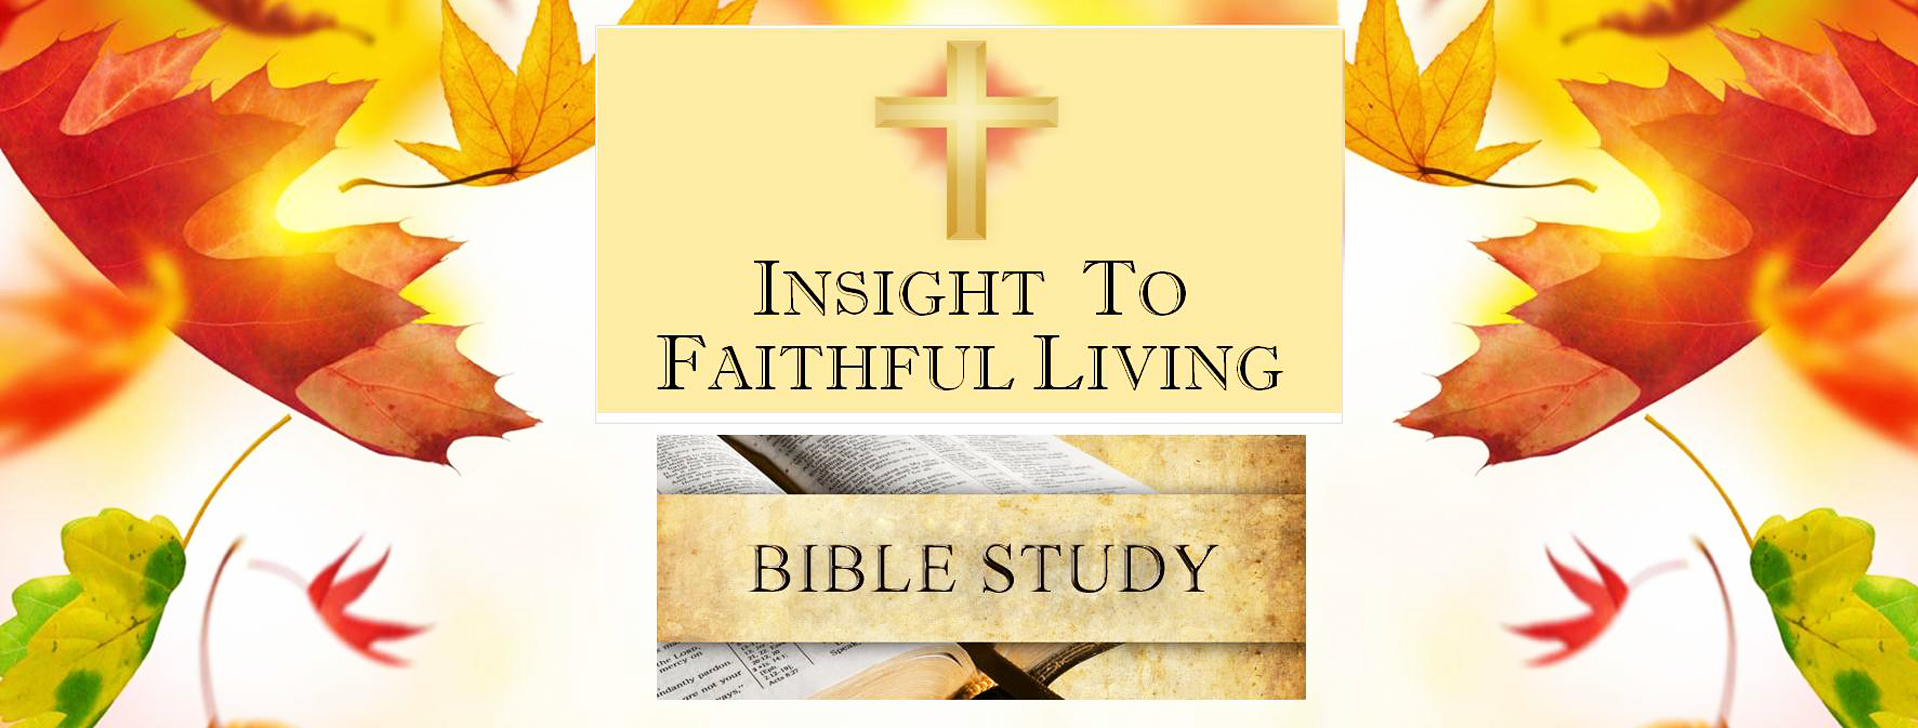 biblestudy_website